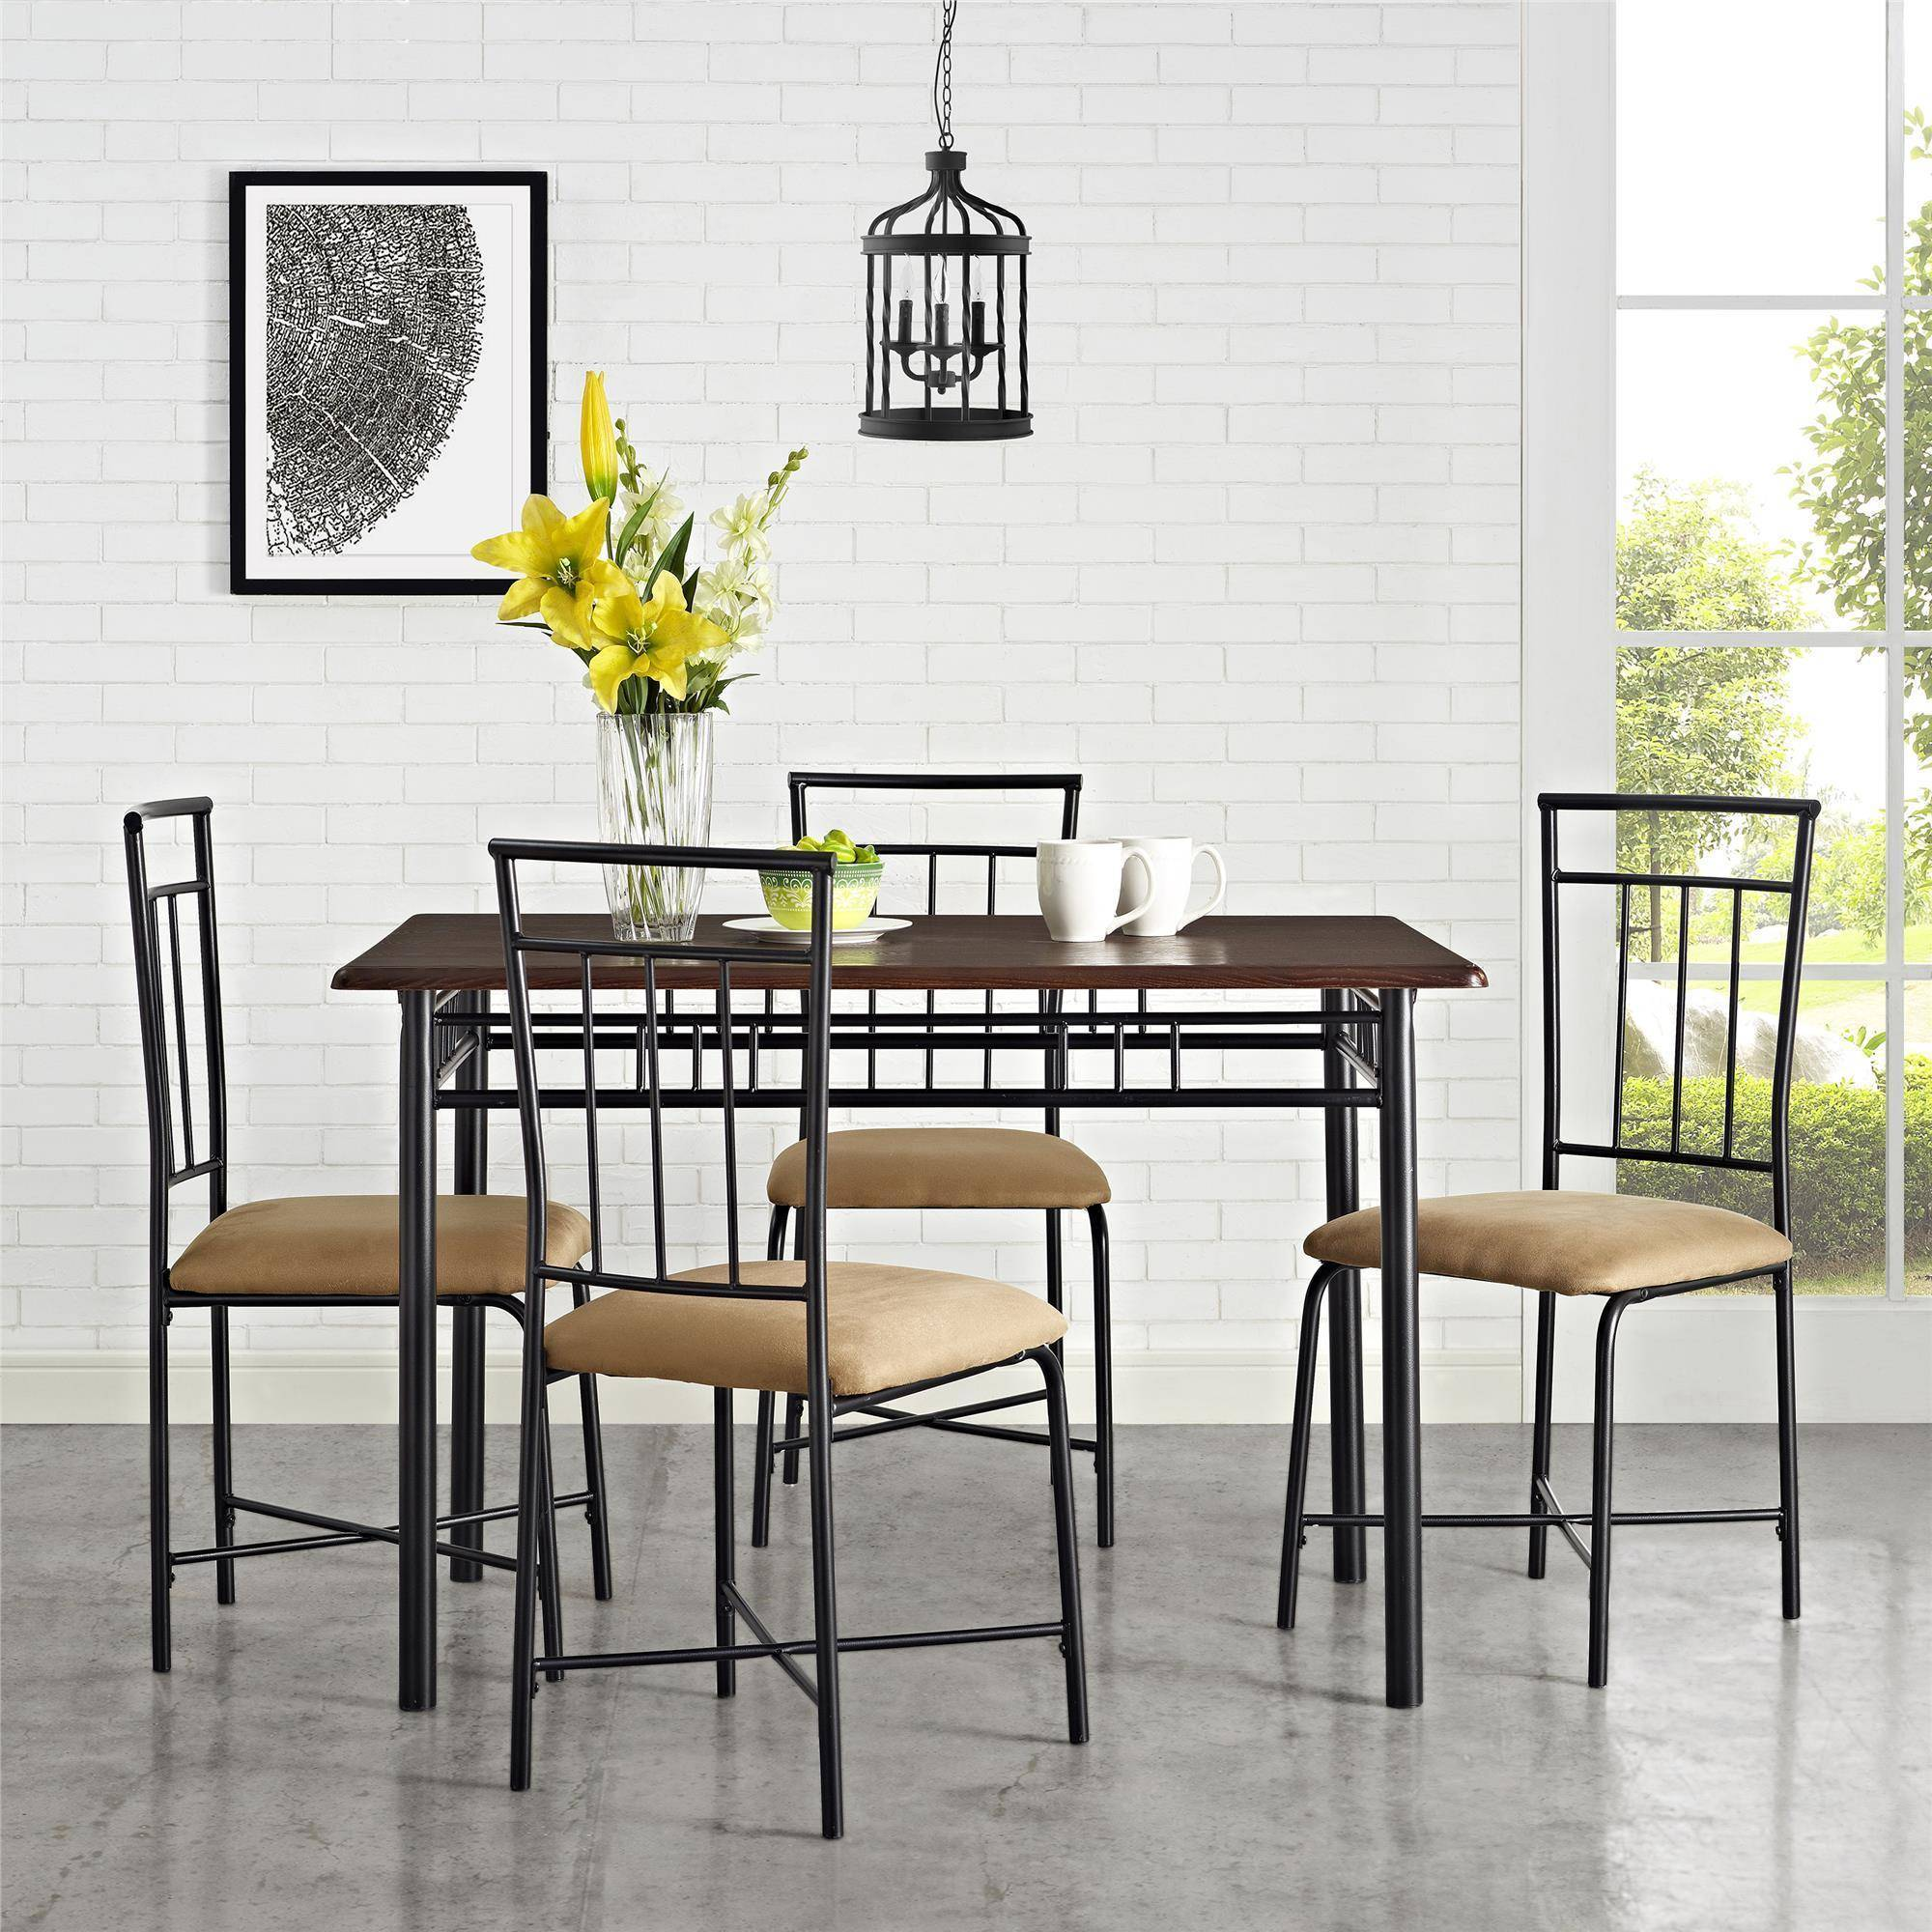 Mainstays 5-Piece Wood and Metal Dining Set, Multiple Colors